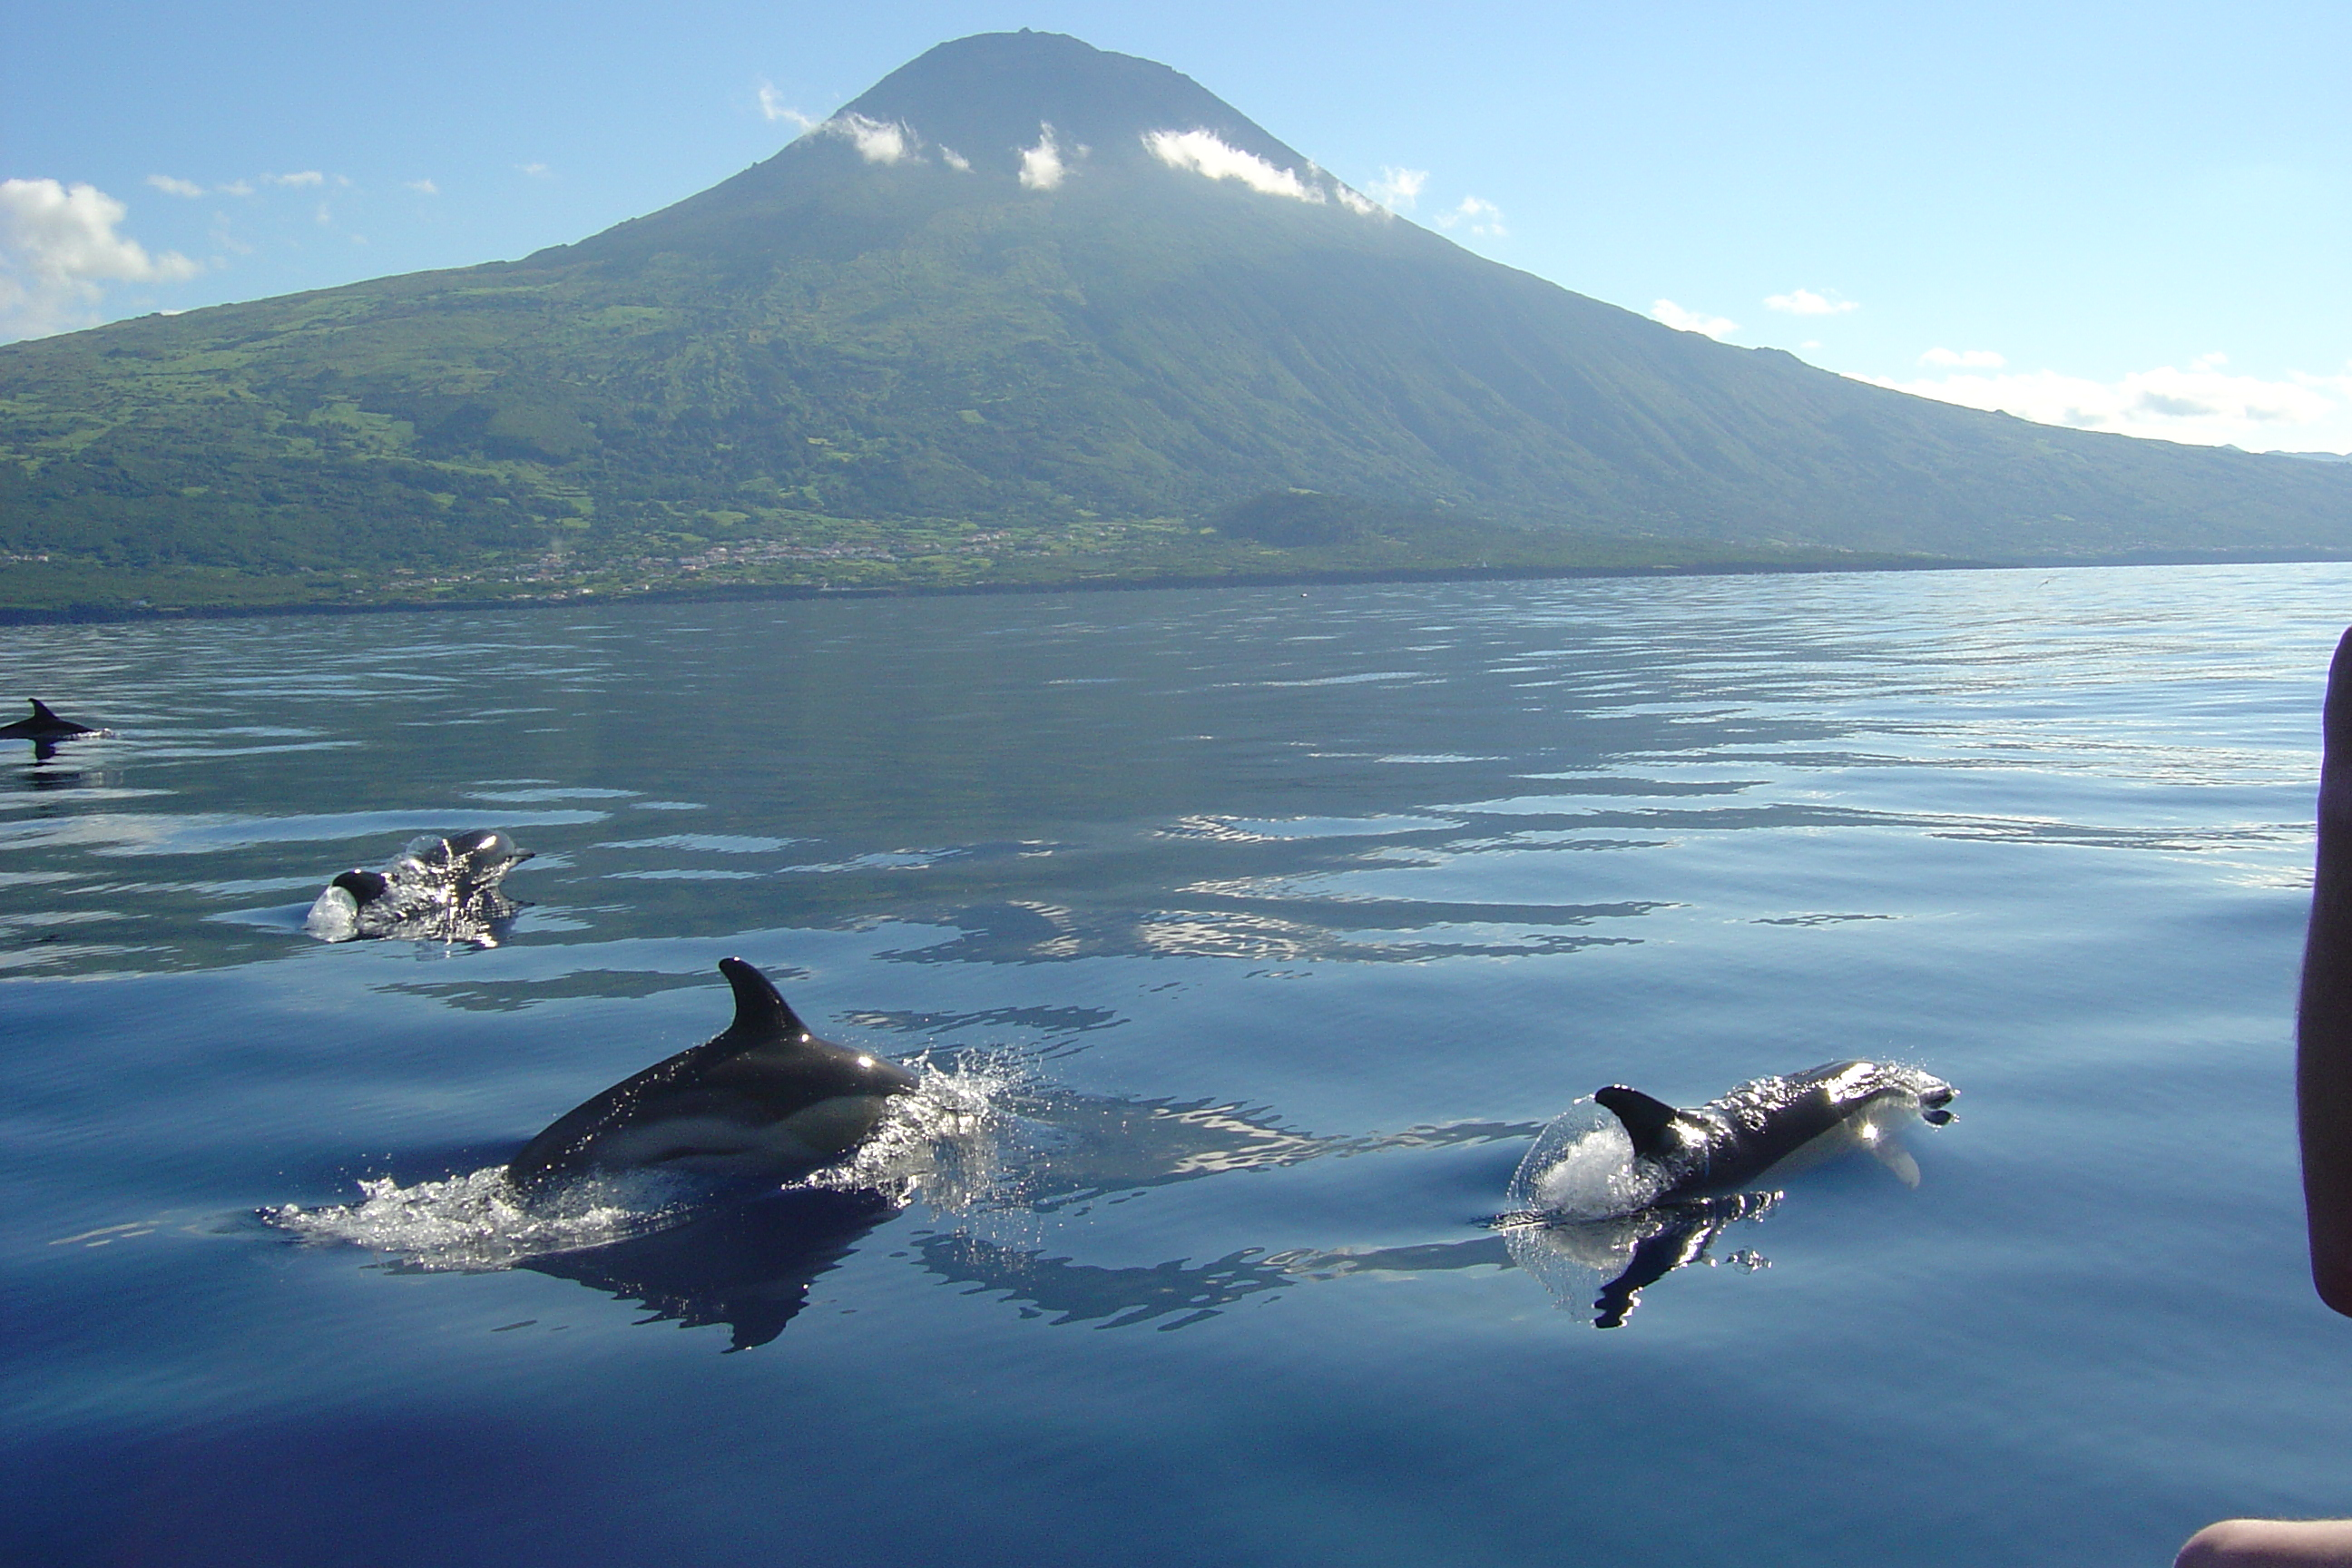 Azore_Photo by Norberto Diver - Azores Turismo